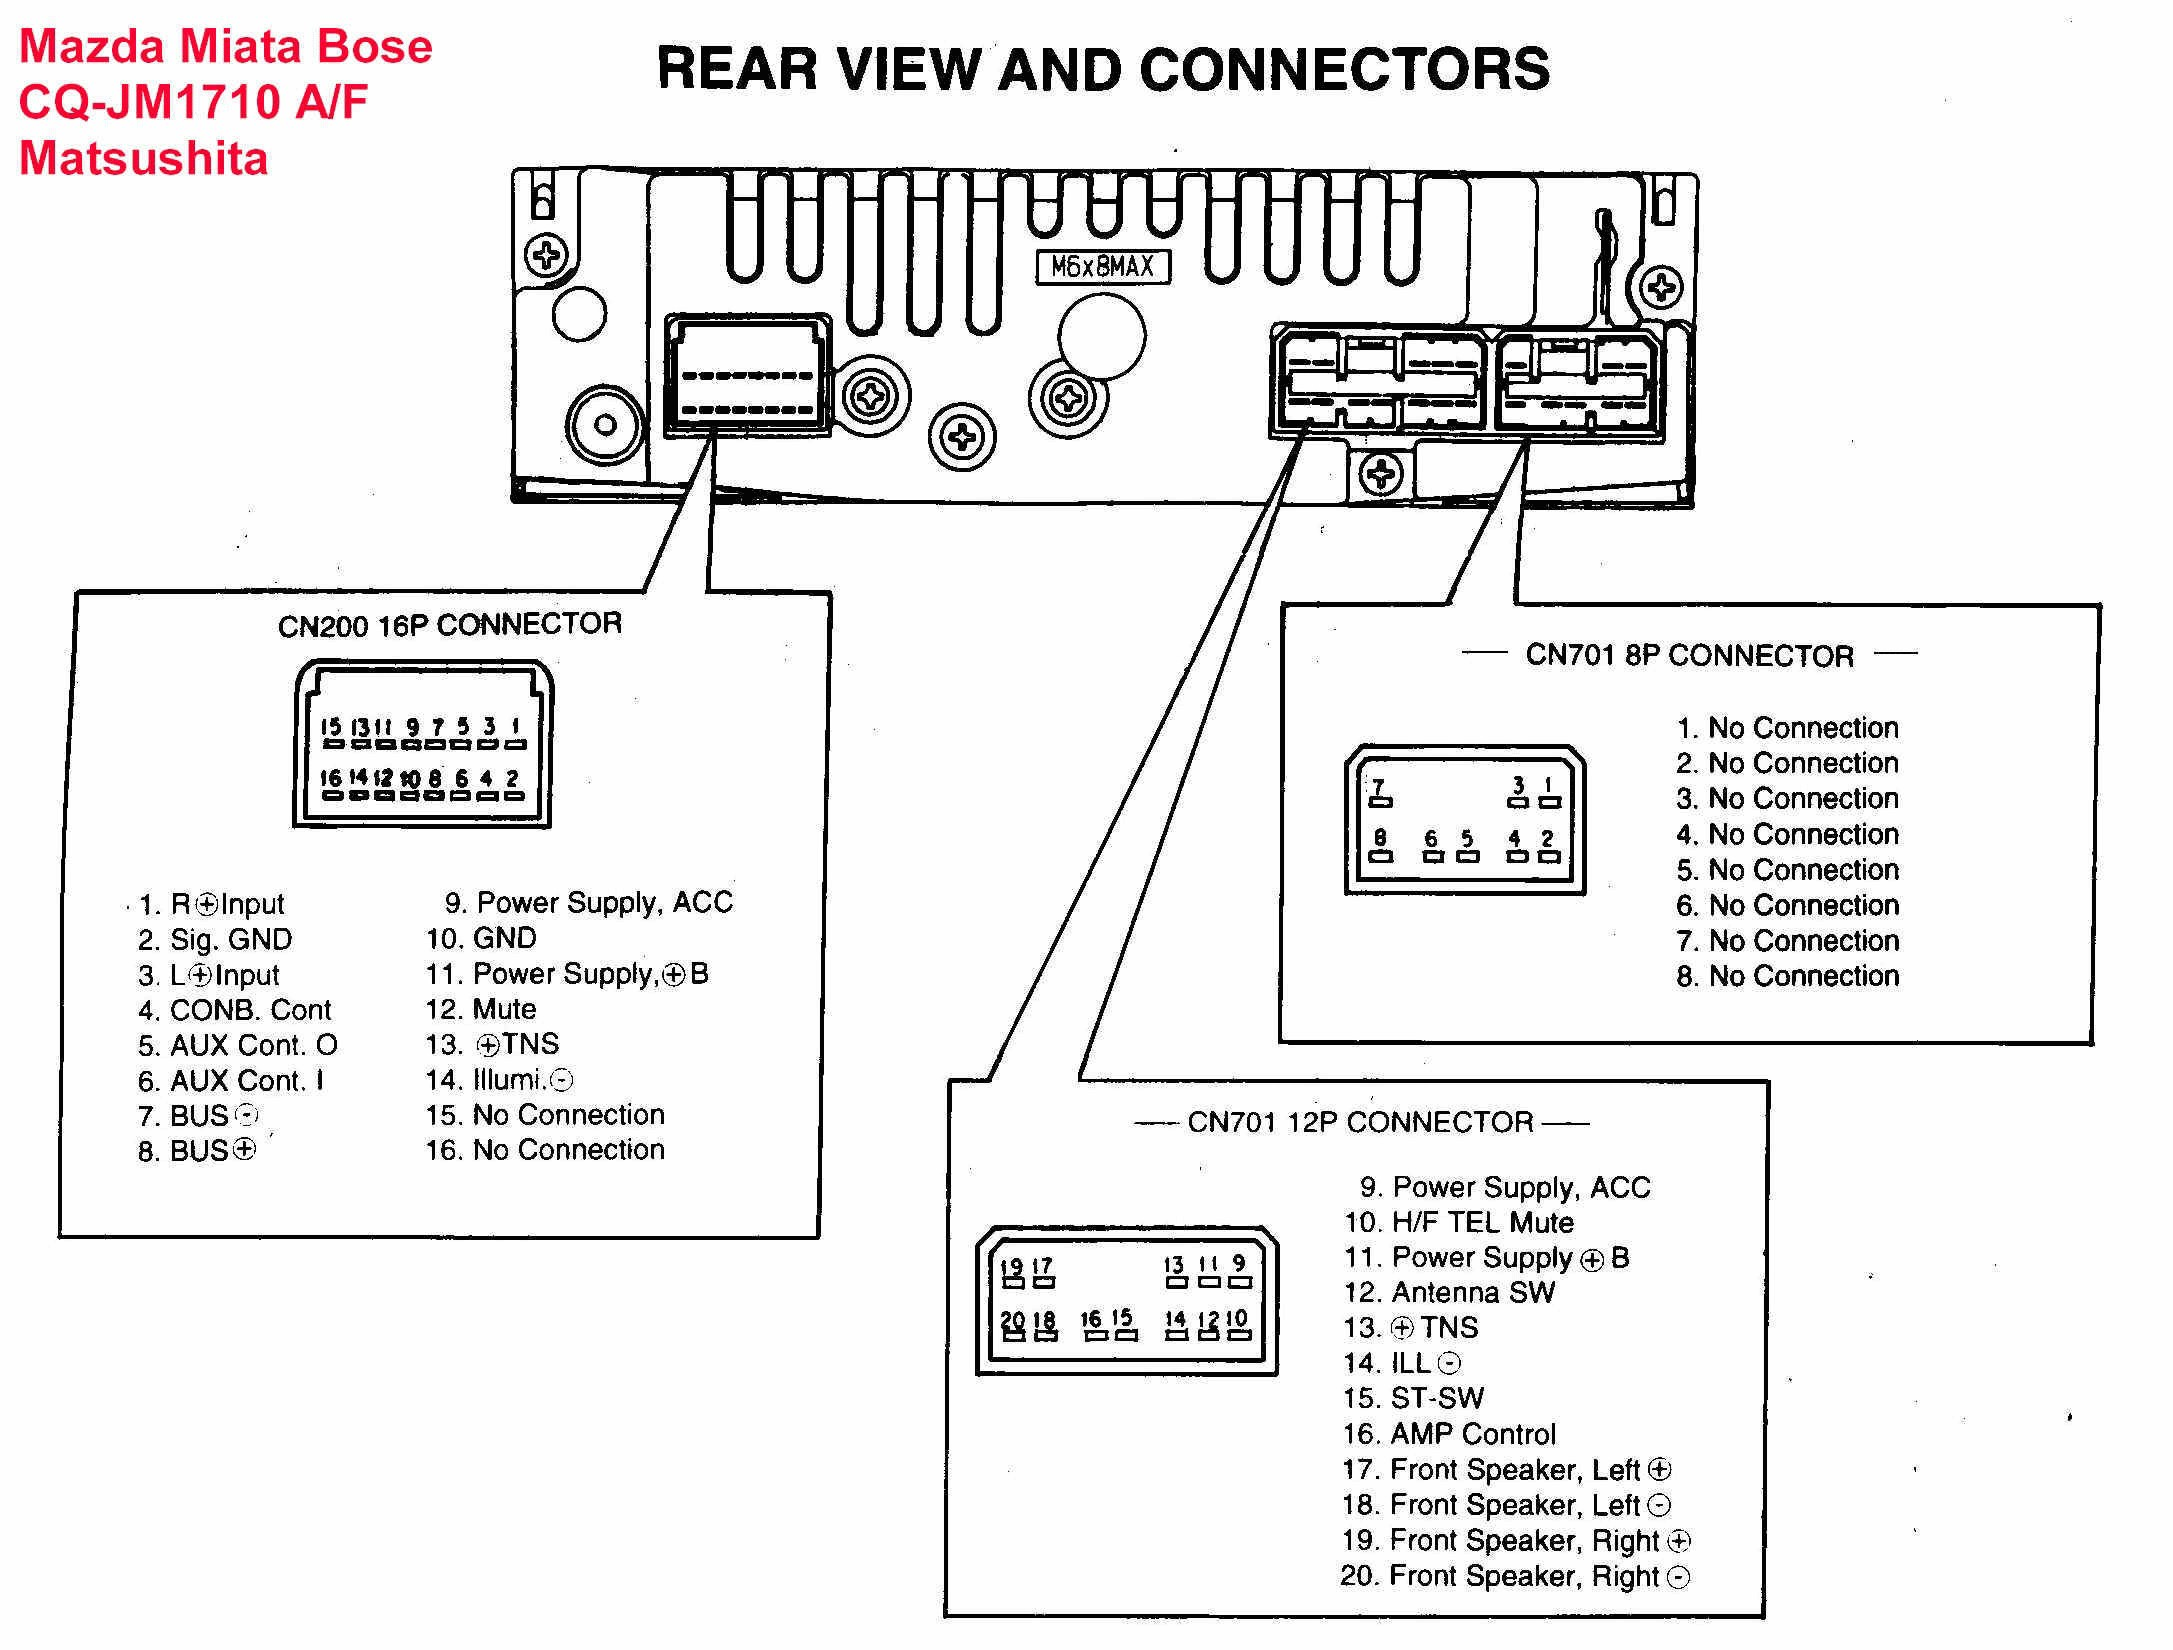 2011 Nissan Maxima Fuse Diagram - Wiring Diagram Detailed on nissan ignition resistor, nissan fuel pump, nissan diesel conversion, nissan transaxle, nissan schematic diagram, nissan repair diagrams, nissan electrical diagrams, nissan suspension diagram, nissan repair guide, nissan main fuse, nissan fuel system diagram, nissan radiator diagram, nissan distributor diagram, nissan ignition key, nissan brakes diagram, nissan chassis diagram, nissan engine diagram, nissan battery diagram, nissan wire harness diagram, nissan body diagram,